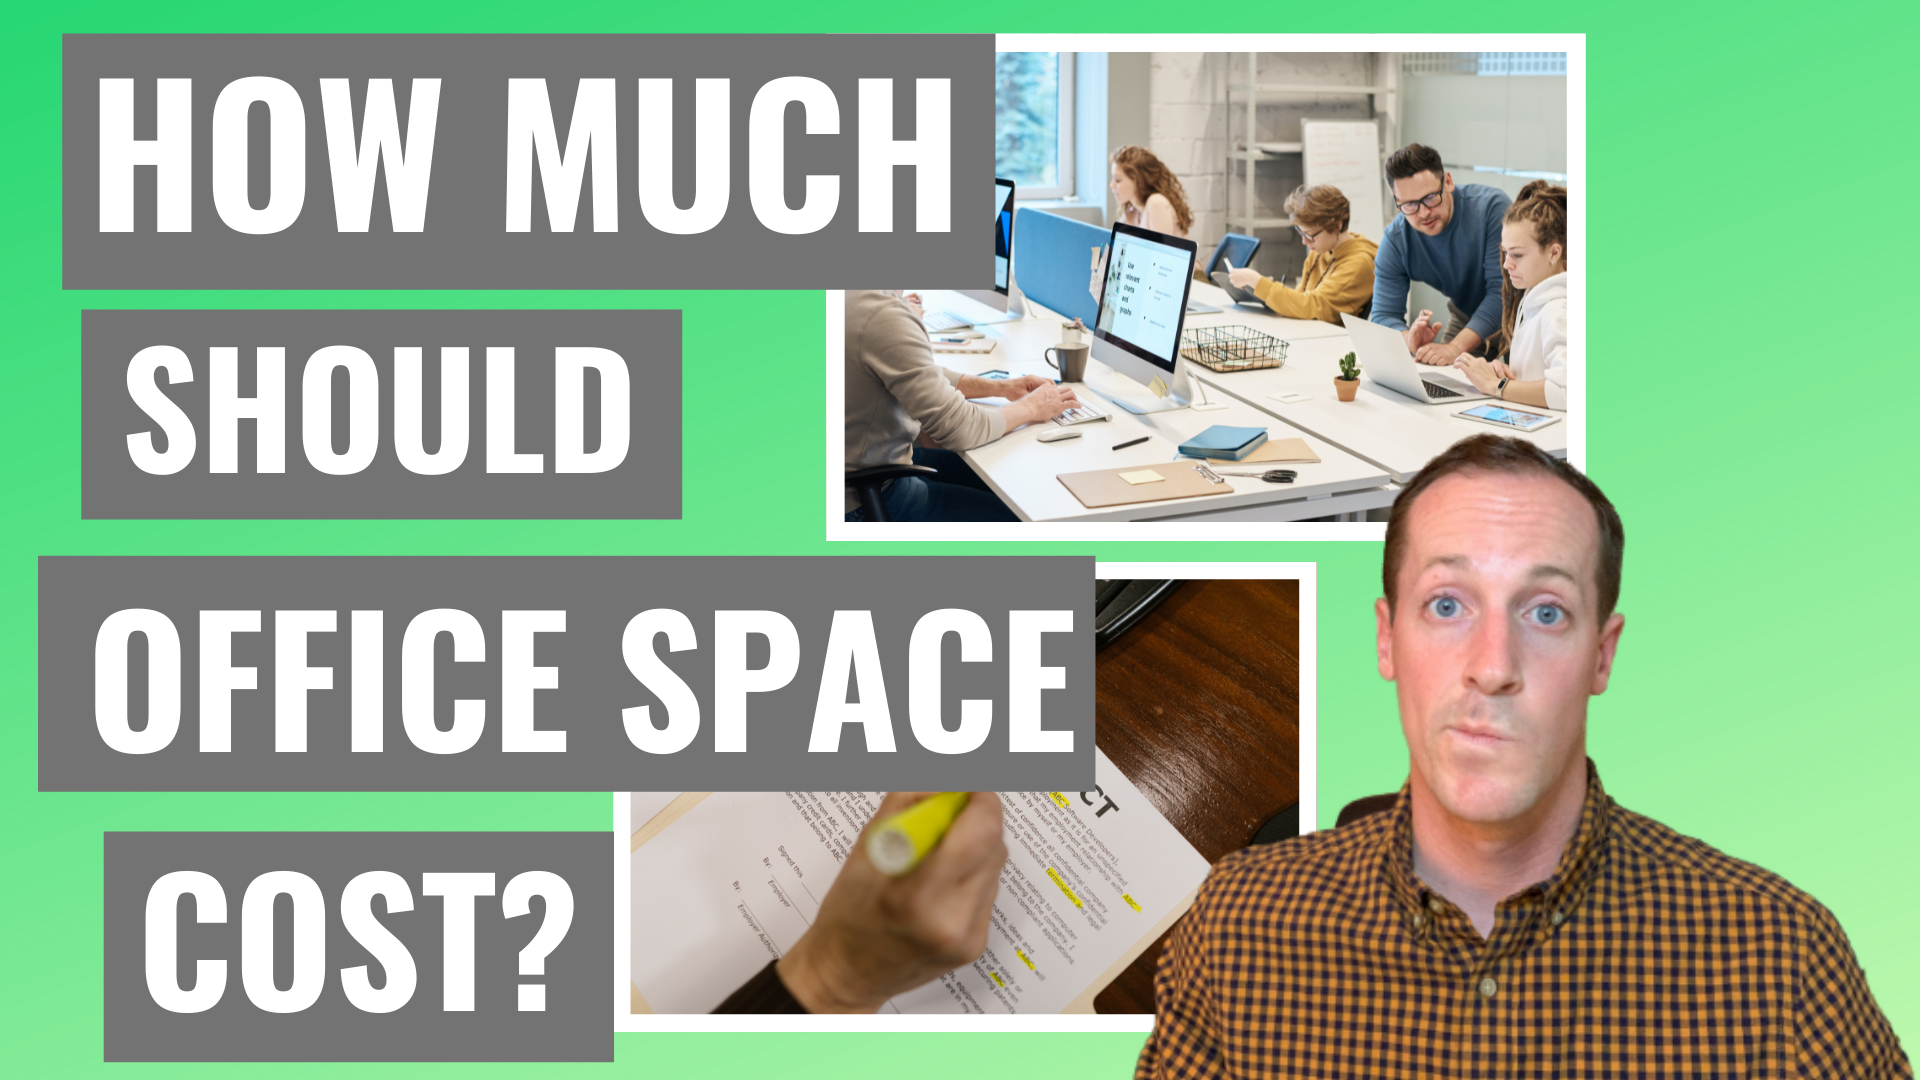 How Much Should I Pay For Office Space?